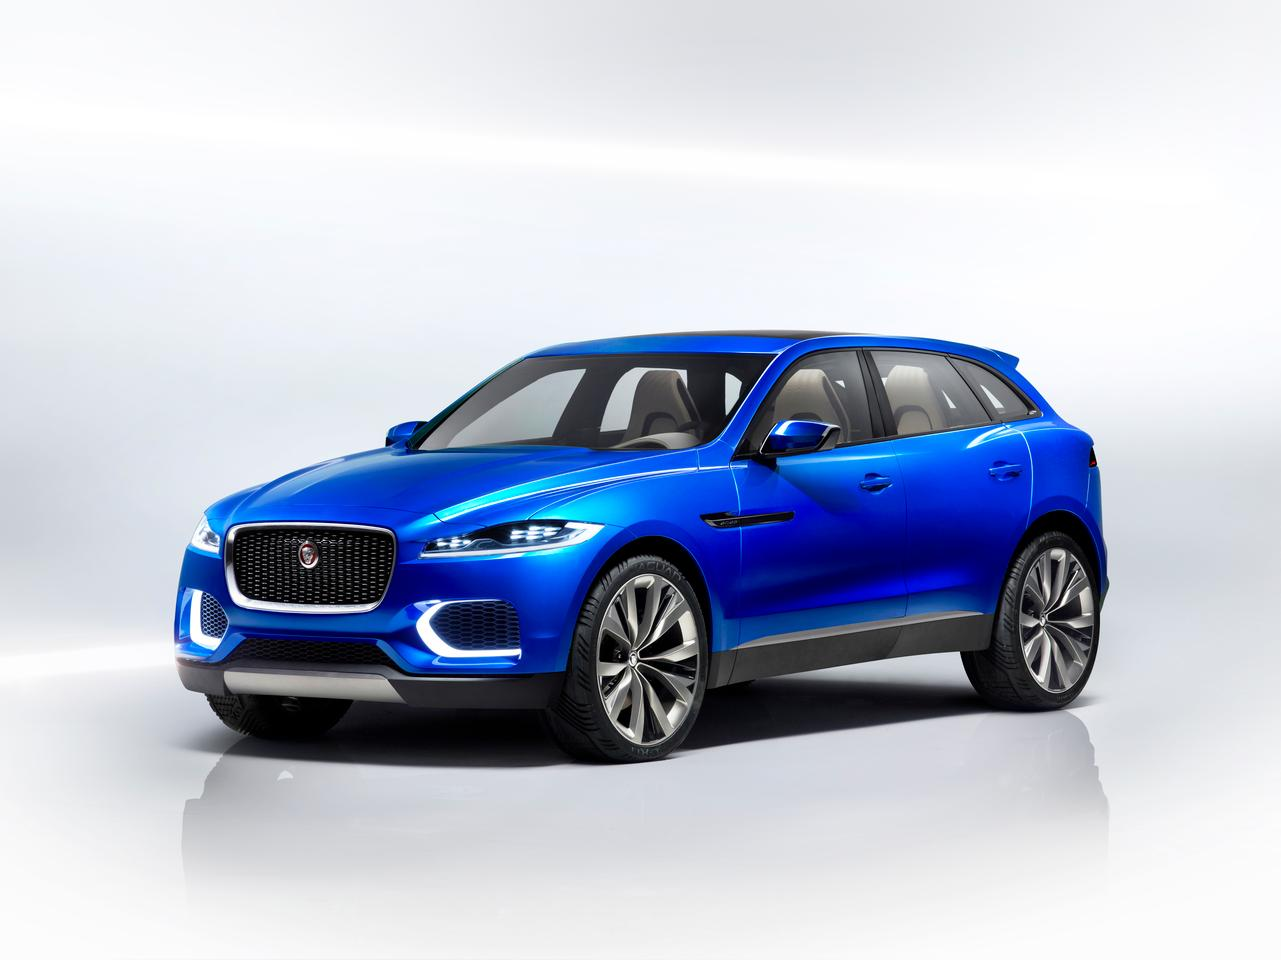 The C-X17 is Jaguar's first sports crossover concept